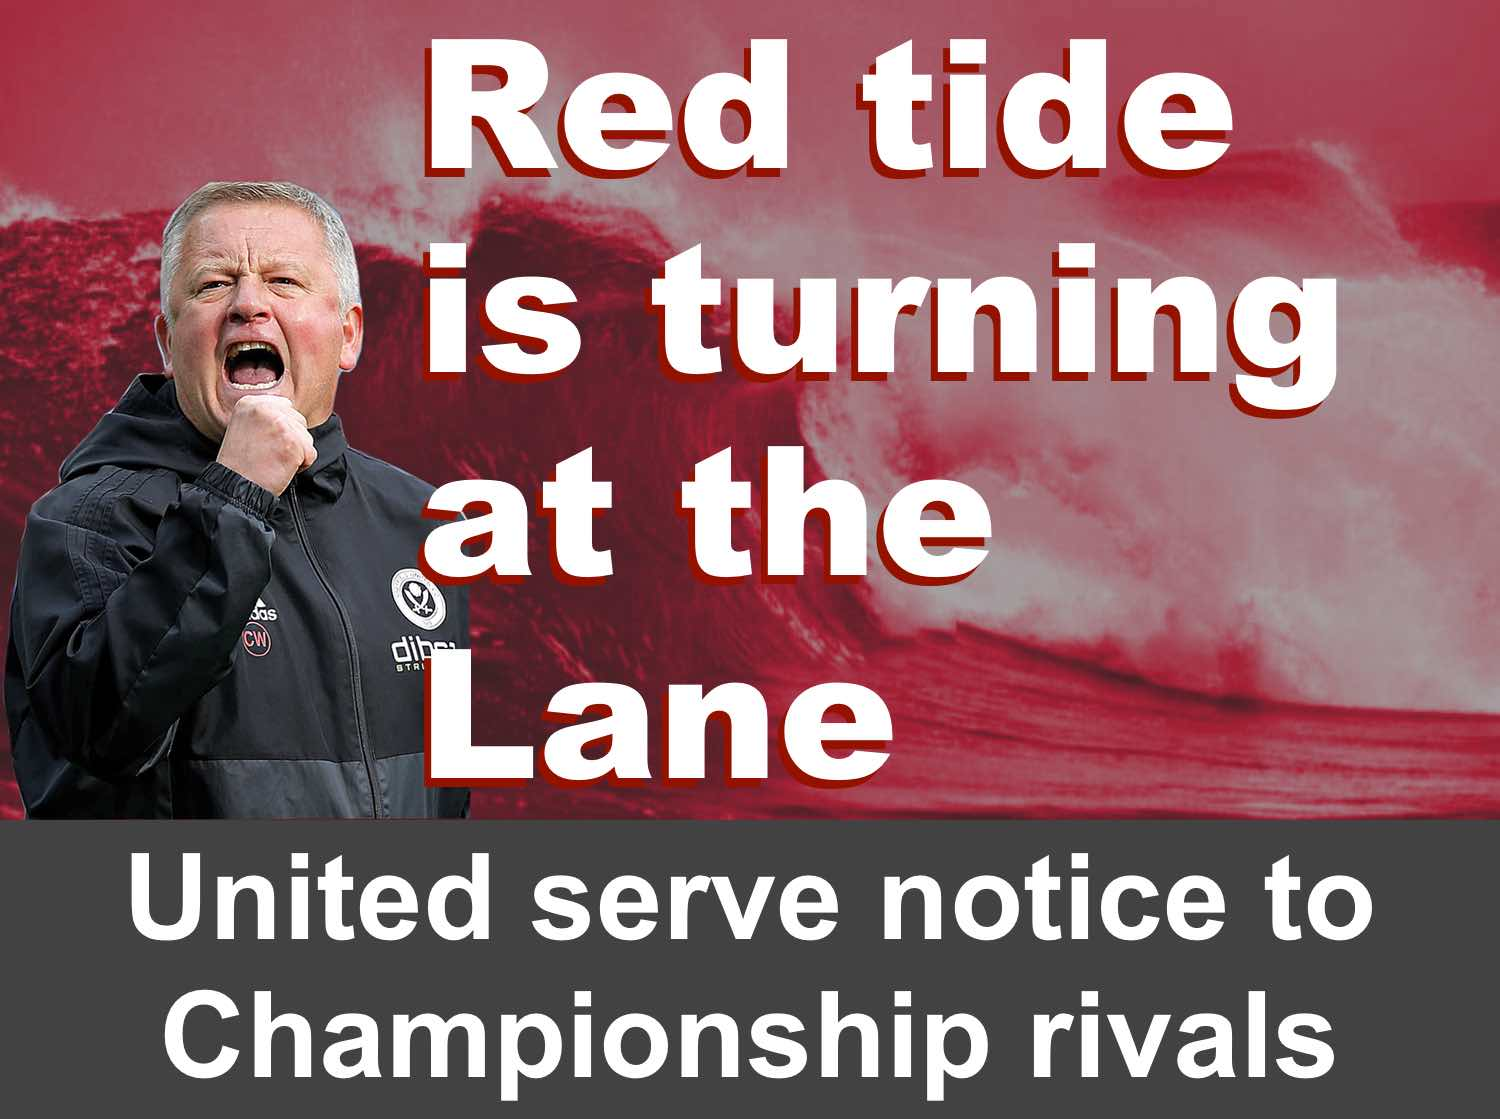 Sheffield United serve notice to Championship rivals as red tide turns for Blades at Bramall Lane